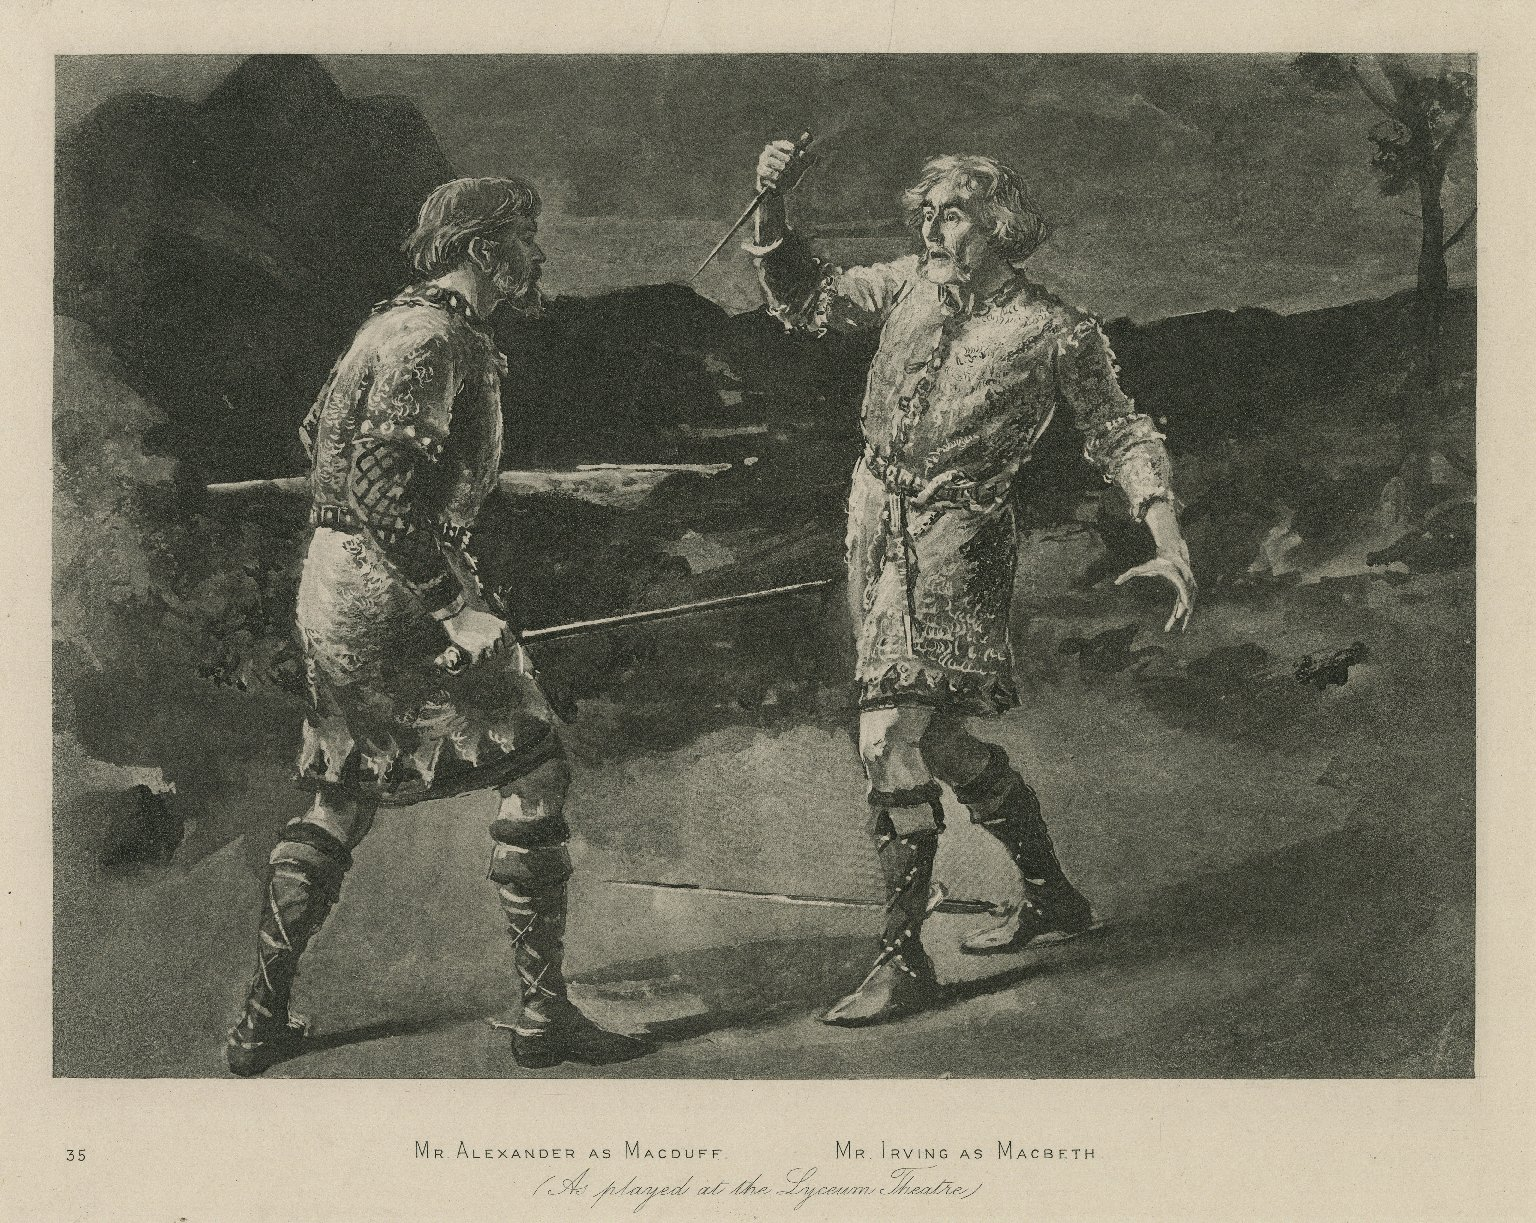 <b>Macbeth</b>     	</br>A scene from Macbeth at the Lyceum Theatre, mid to late 19th century</br><br/><b>Source: </b><i>Mr. Alexander as Macduff, Mr. Irving as Macbeth (Call number: ART File I72 no.7), Folger Digital Image Collection, University of Cincinnati Libraries Digital Collections, University of Cincinnati, http://digproj.libraries.uc.edu:8180/luna/servlet/s/f5qxl5</i>